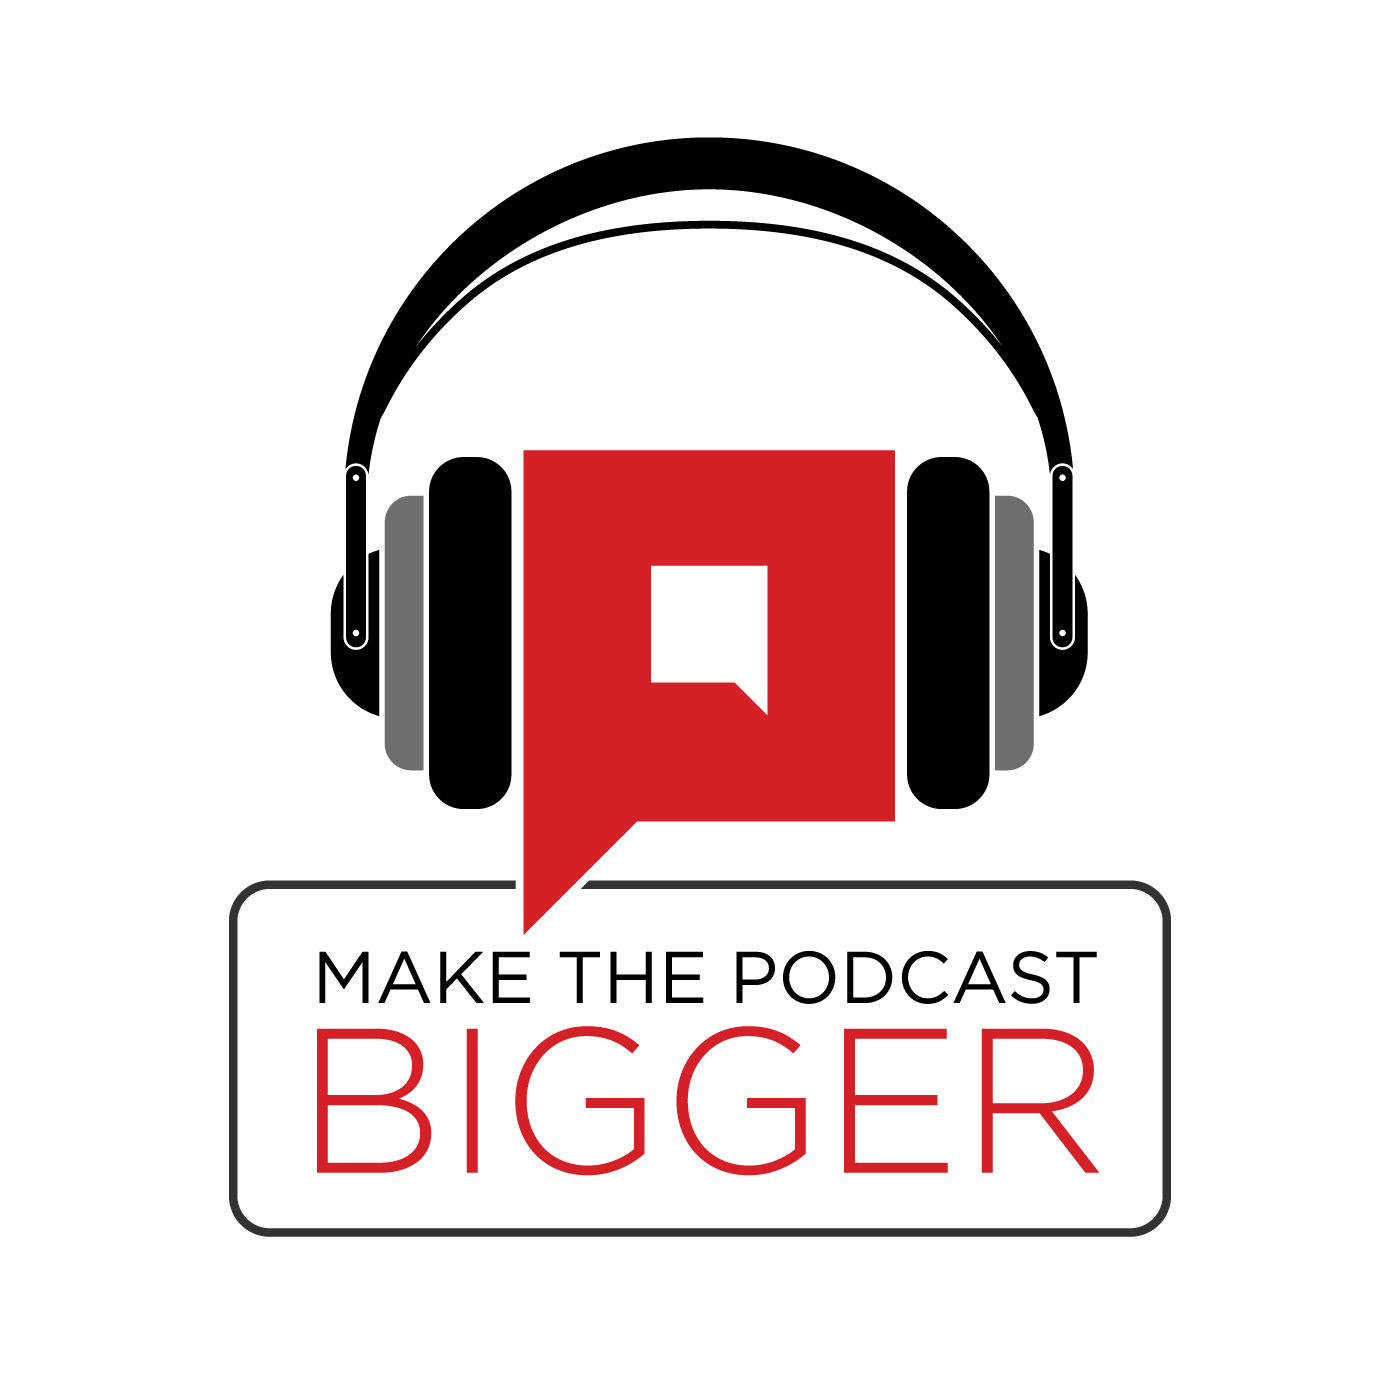 make_the_podcast_bigger_logo